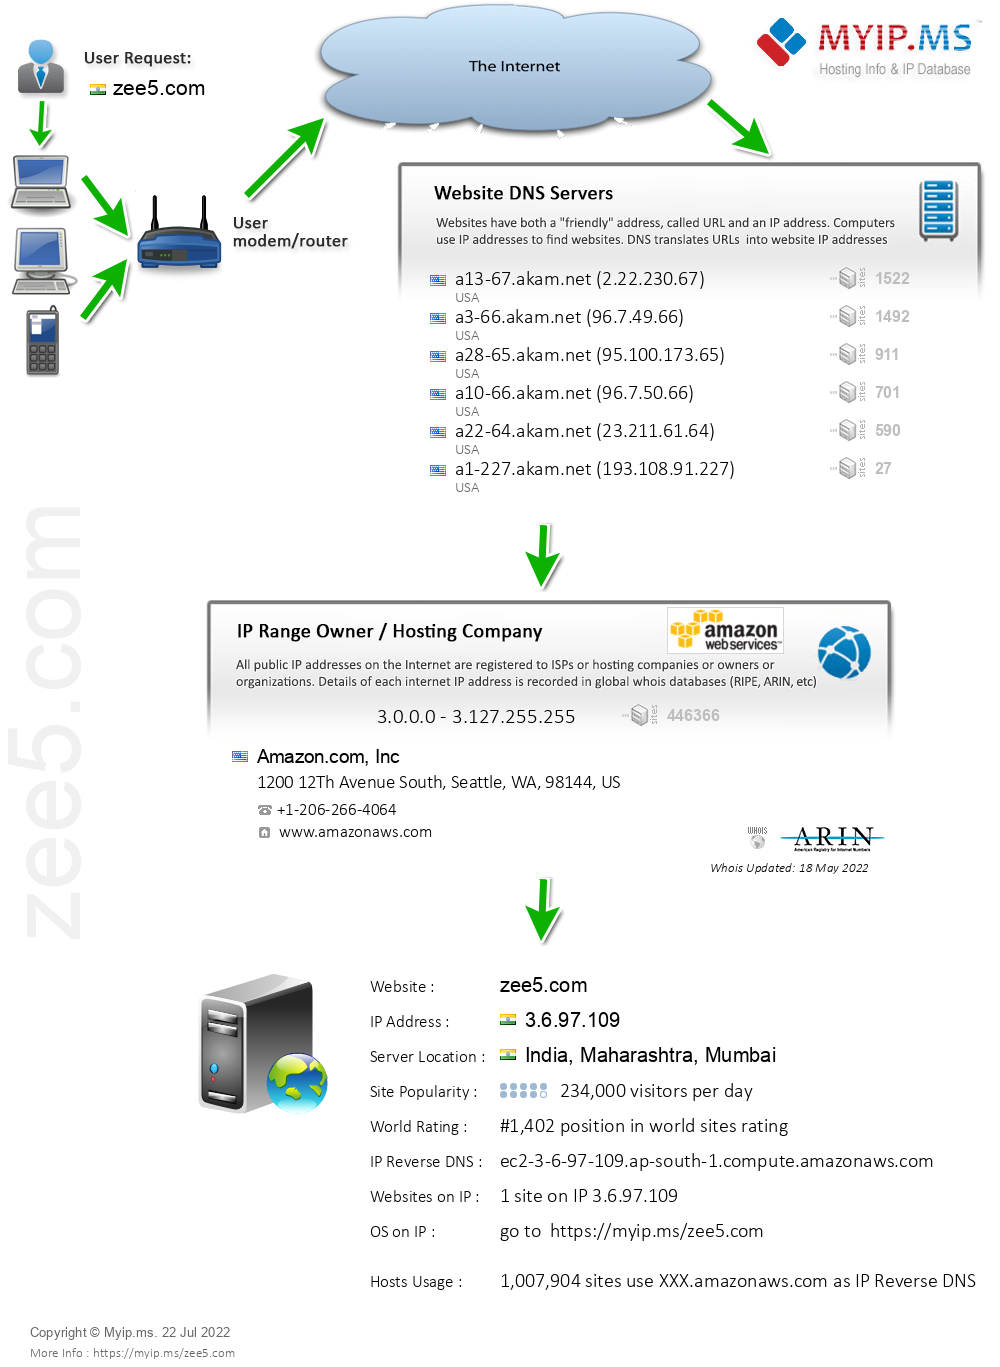 Zee5.com - Website Hosting Visual IP Diagram